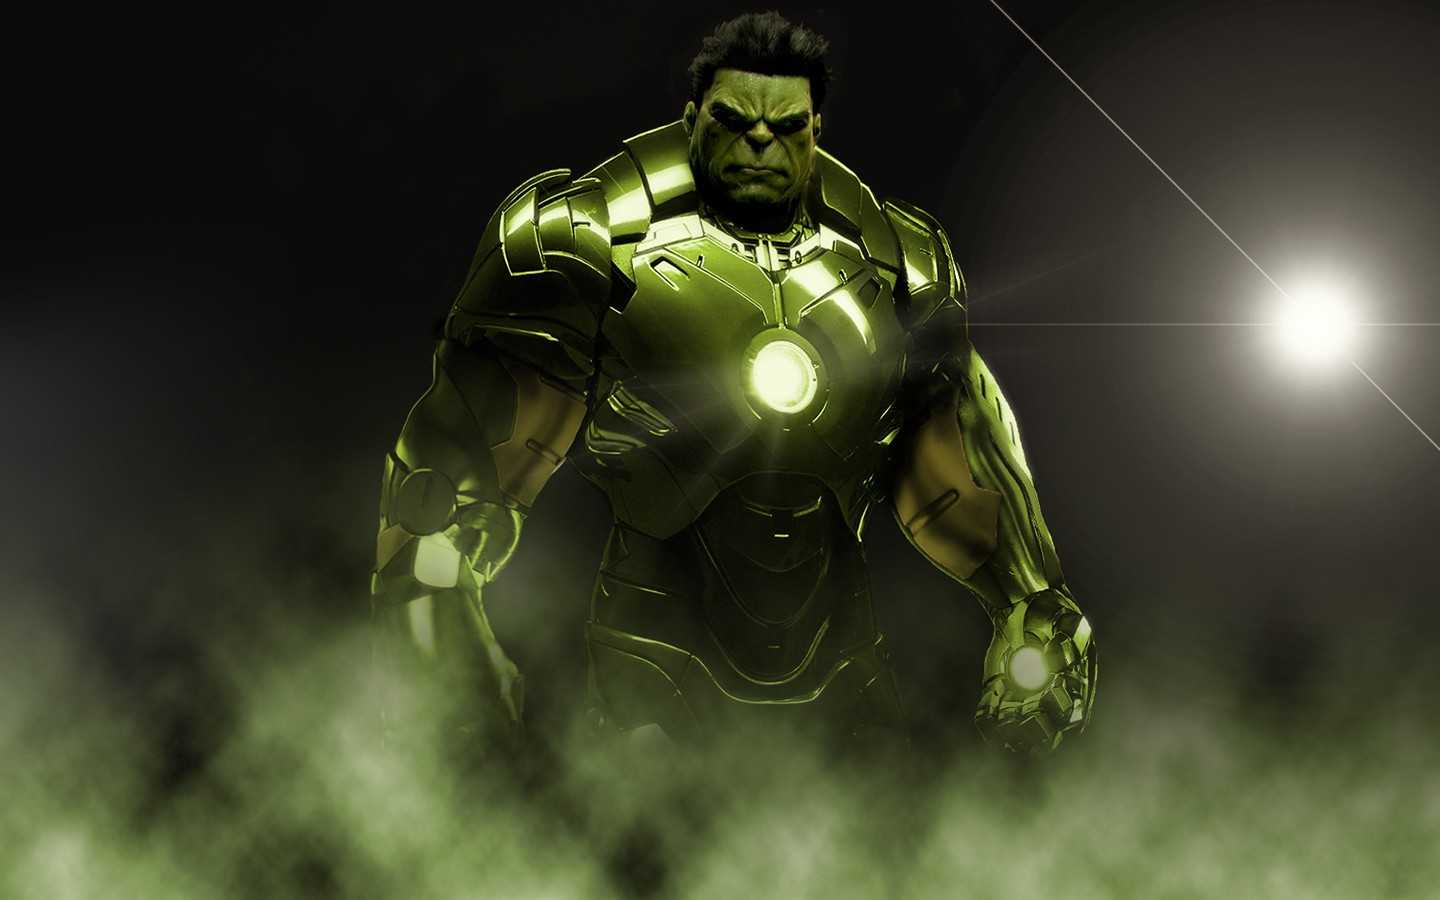 Wallpaper Hulk 39 Hulk High Resolution Wallpapers Collection 1440x900